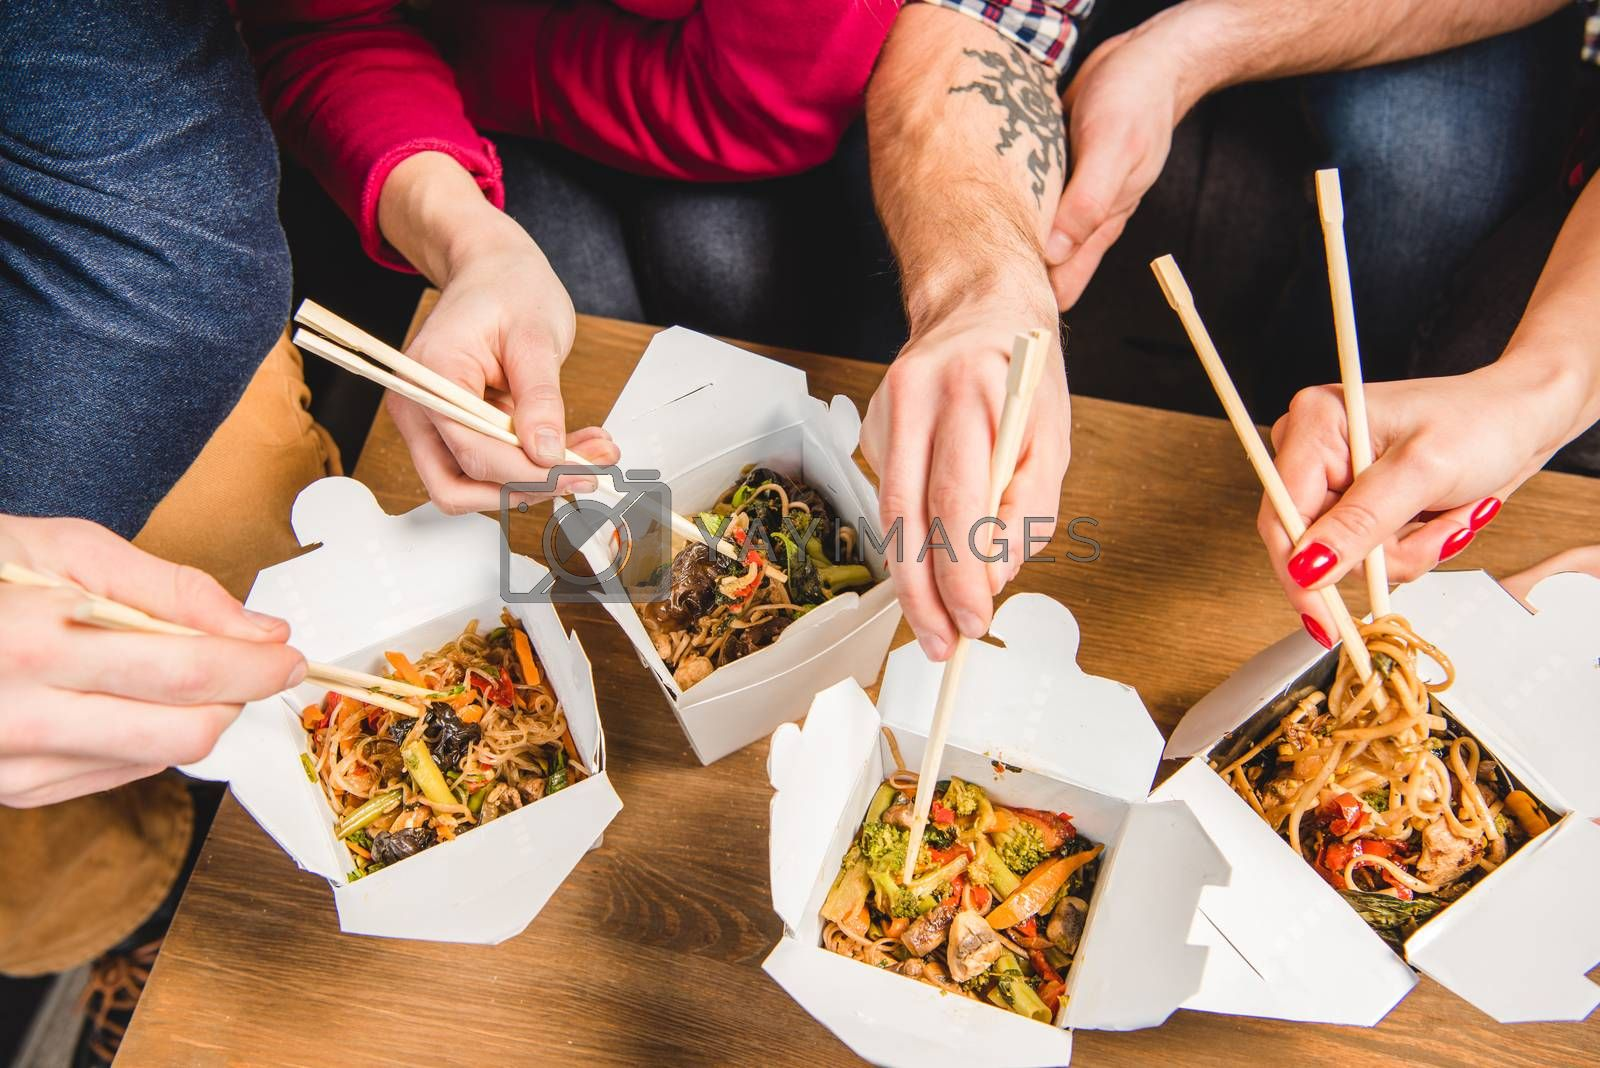 Partial view of people eating noodles with chopsticks